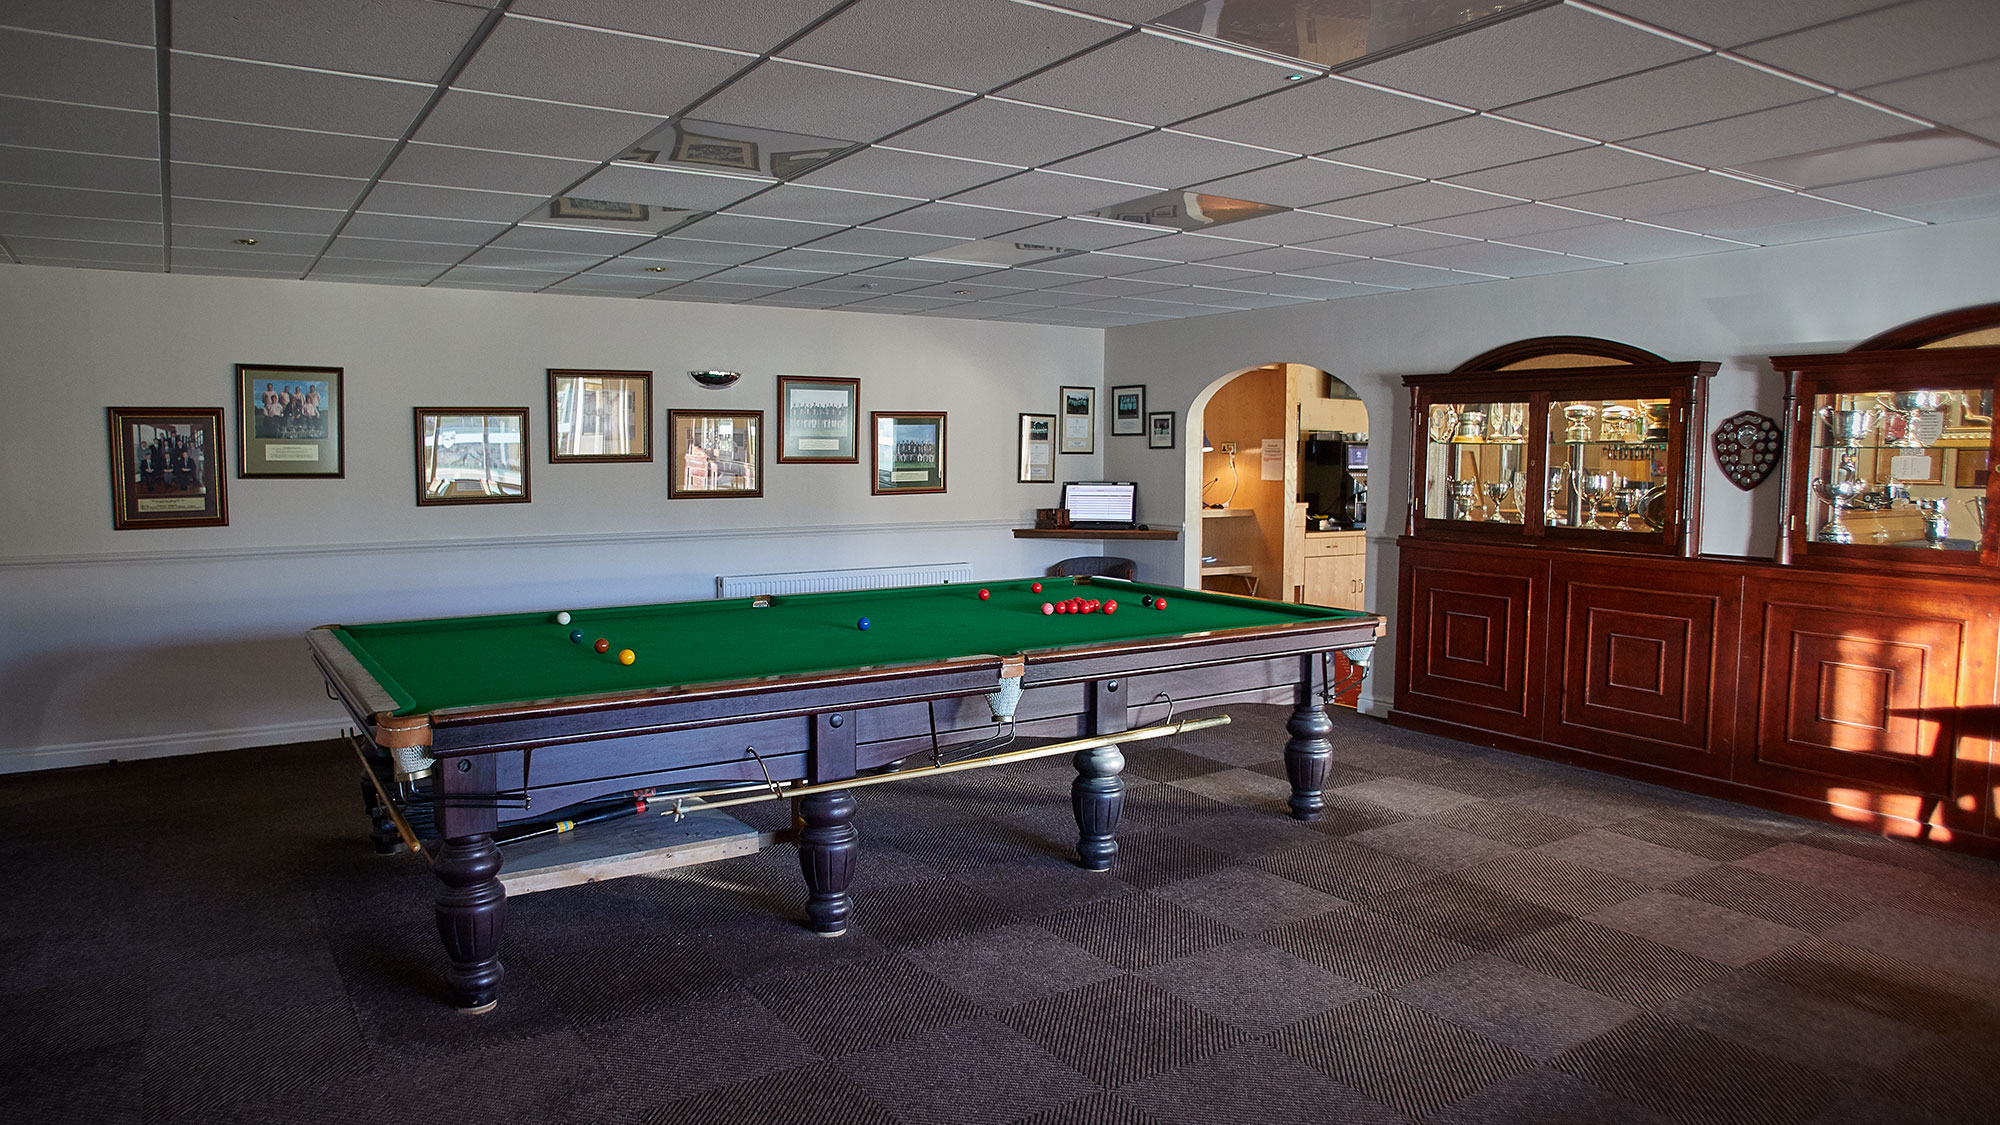 Snooker Room - Our snooker room has one snooker table along with a seating area for visiting parties and small groups to use when the function room is in use. The use of the snooker room is available to members and their guests.